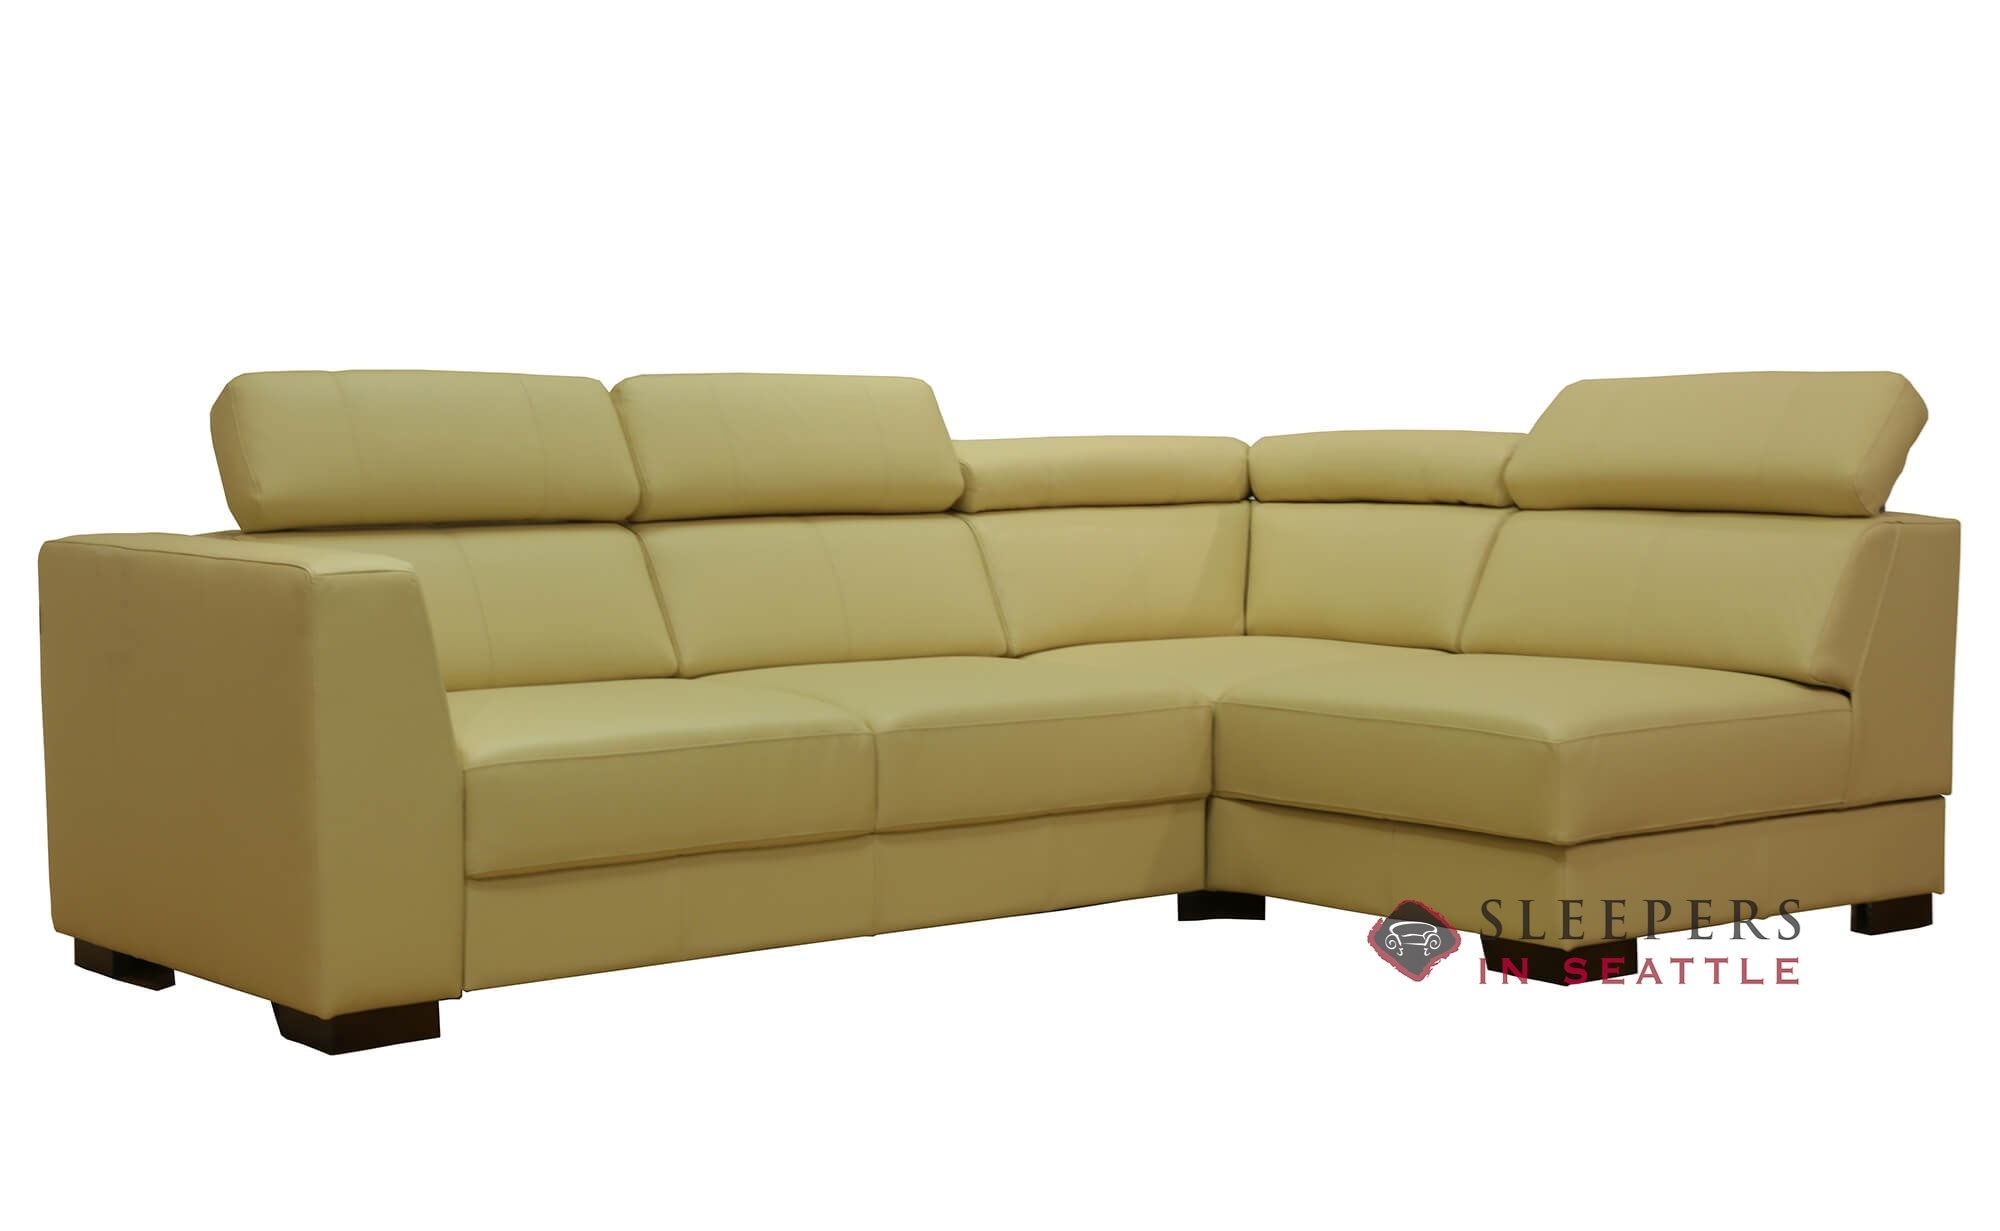 Luonto Halti Leather True Sectional Full Sleeper Sofa